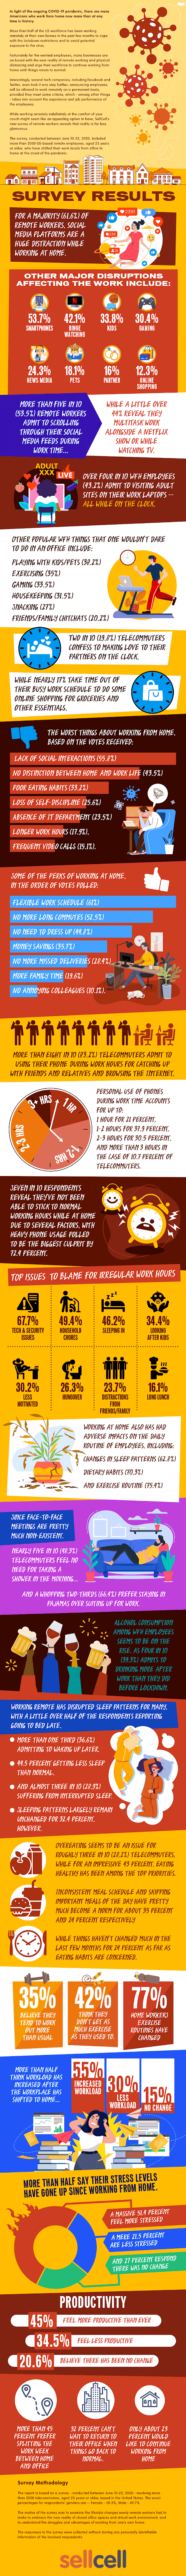 Work From Home Survey Results [Infographic]